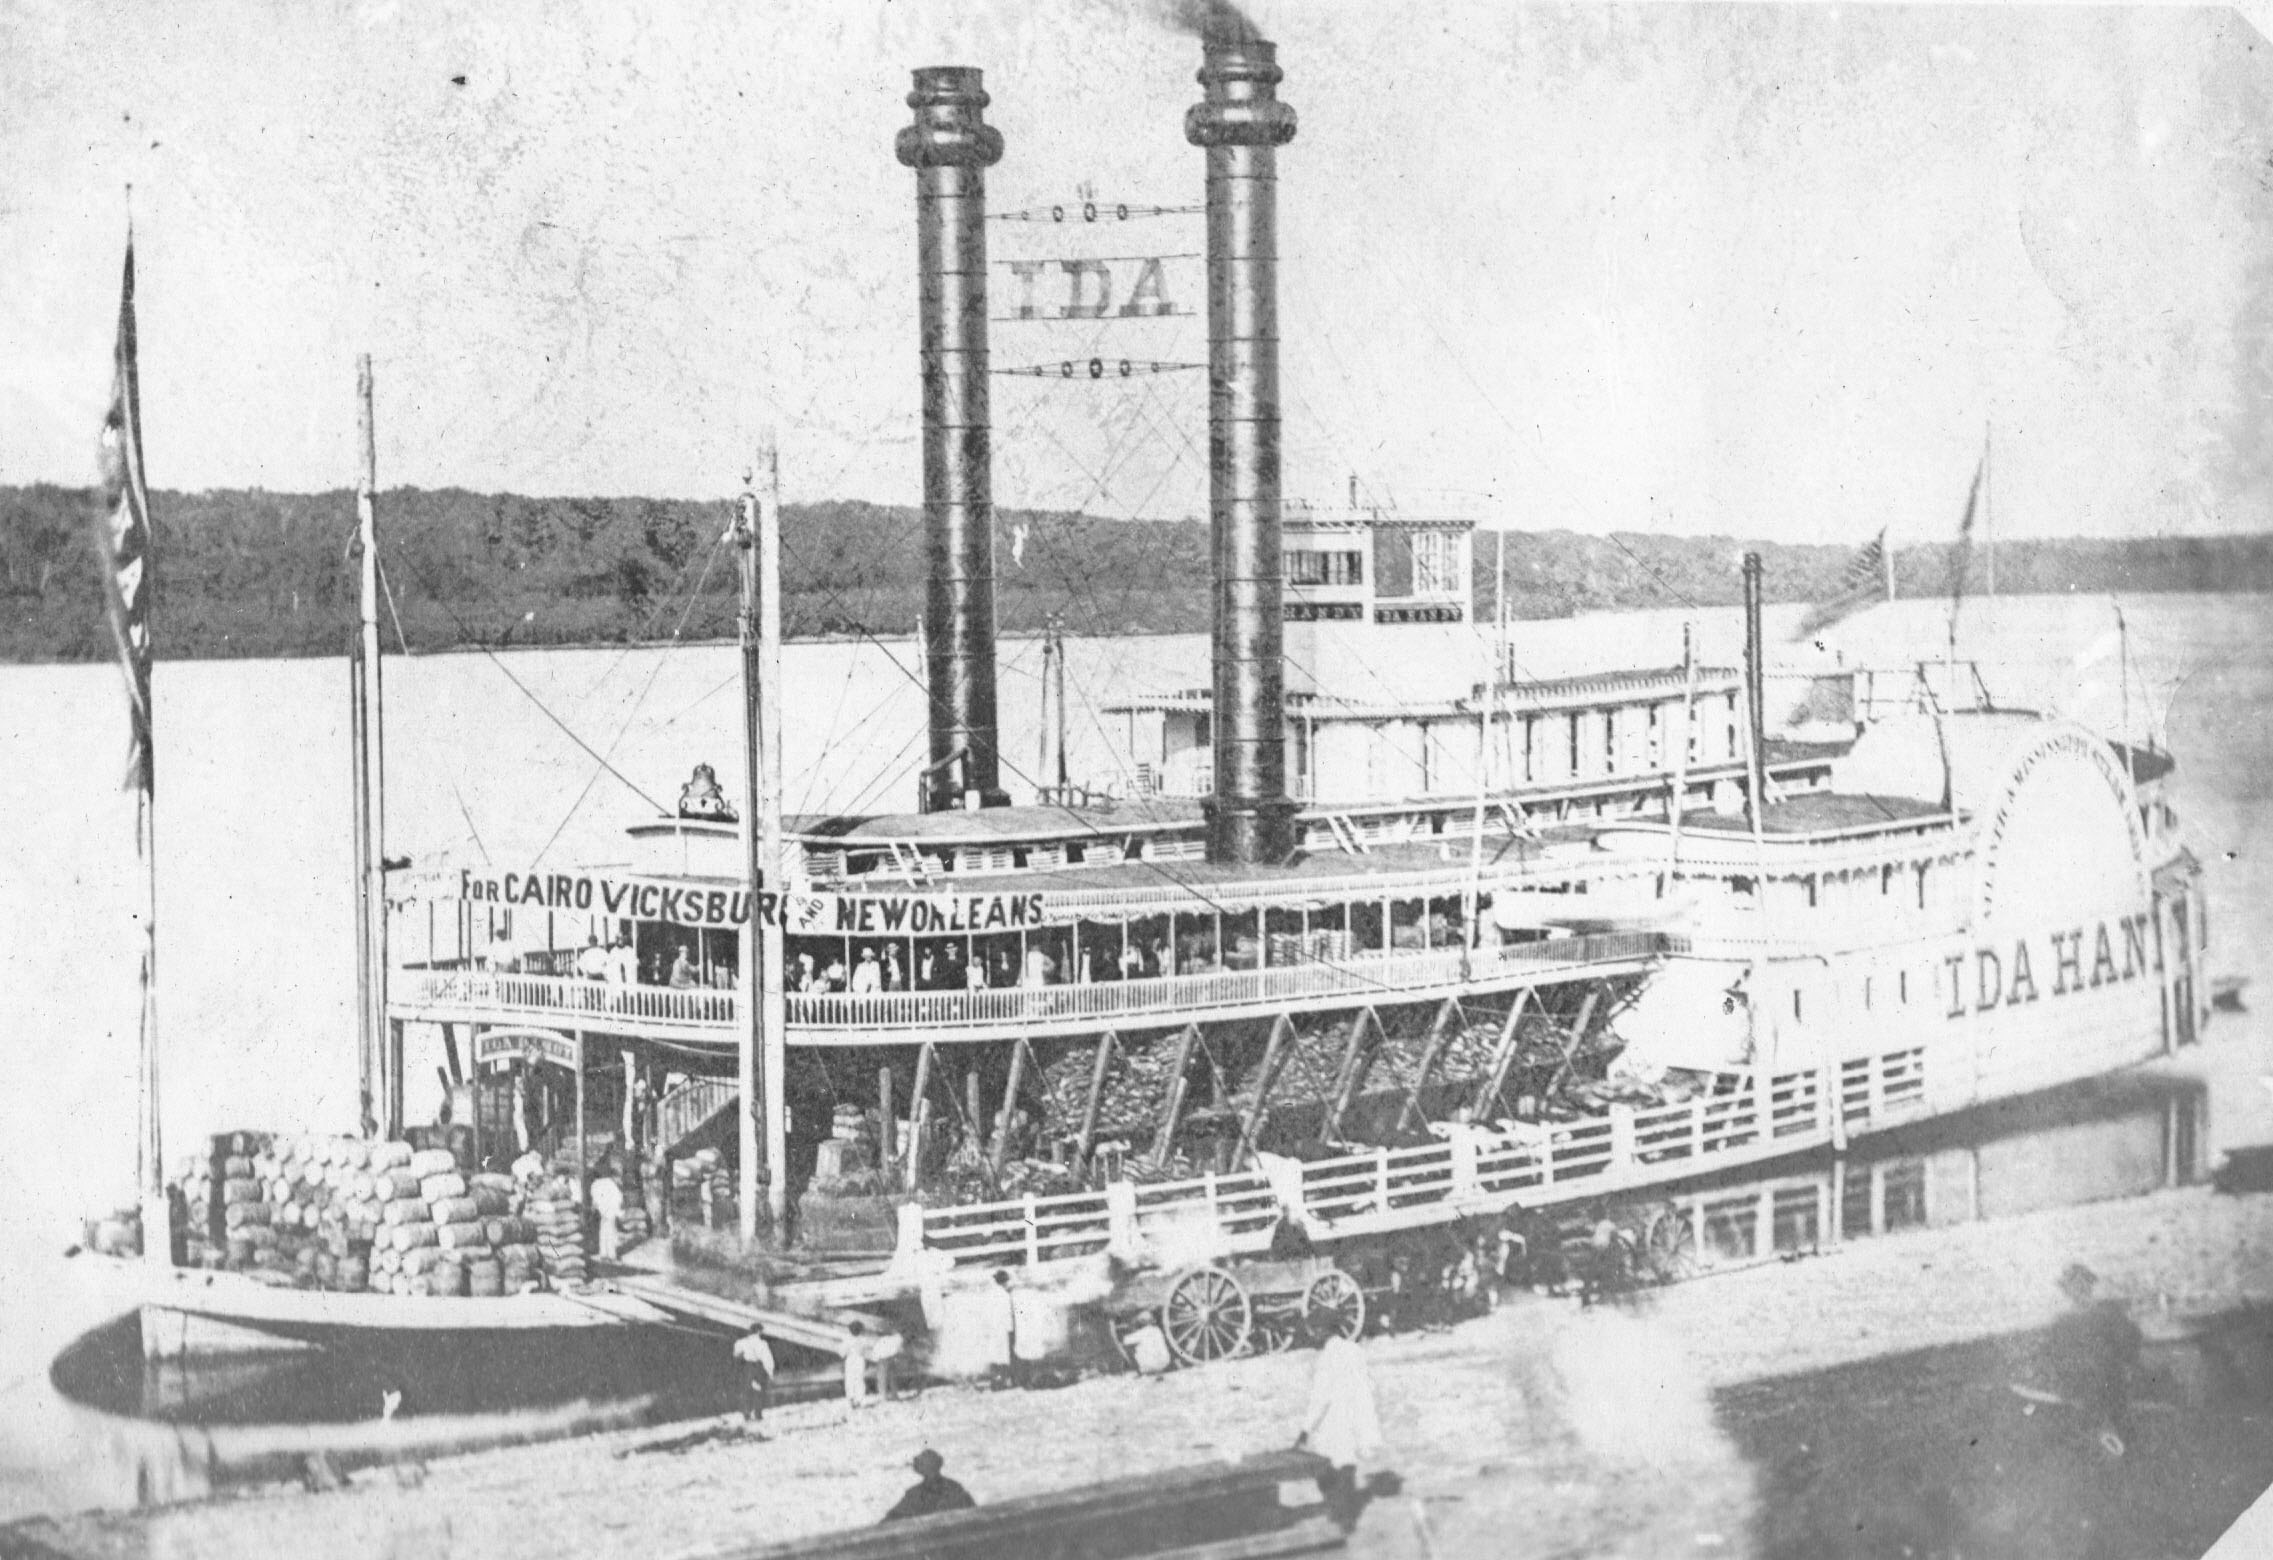 The only known image of the steamer Ida Handy. (Keith Norrington collection)